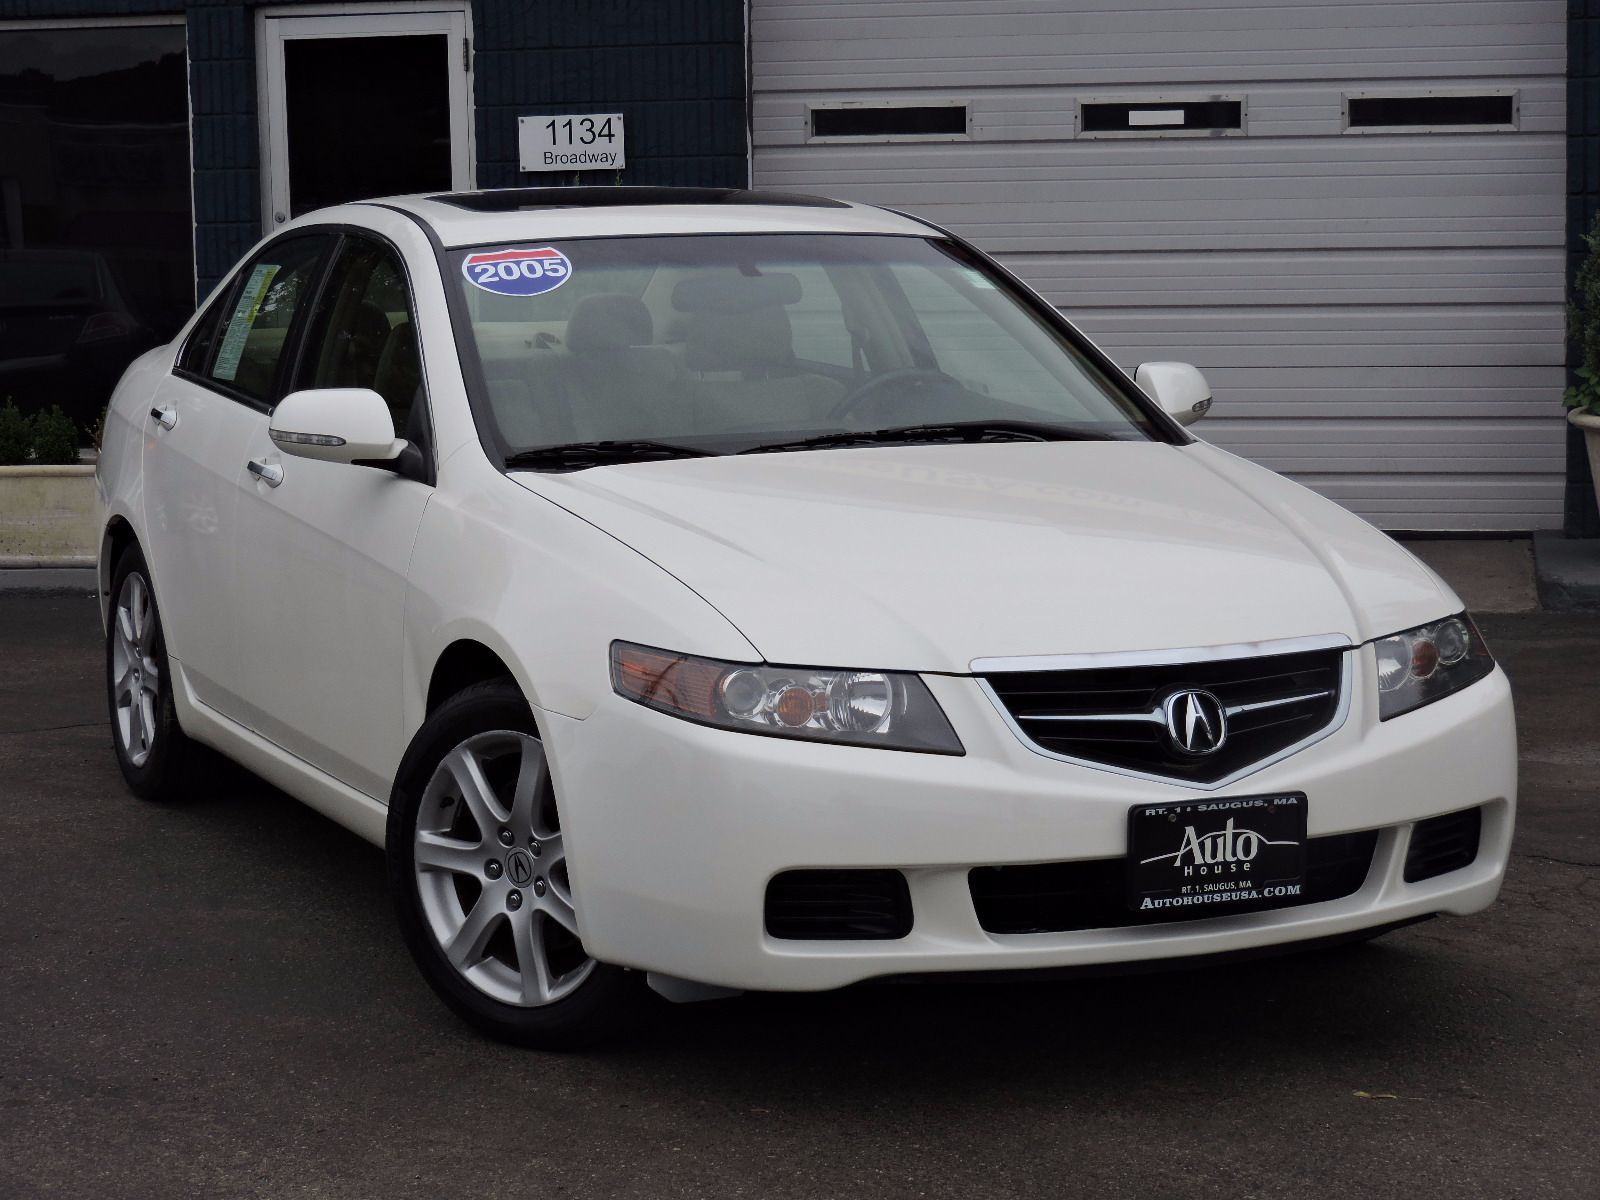 acura buyrightautocenter pkg tsx youtube tech for sale watch